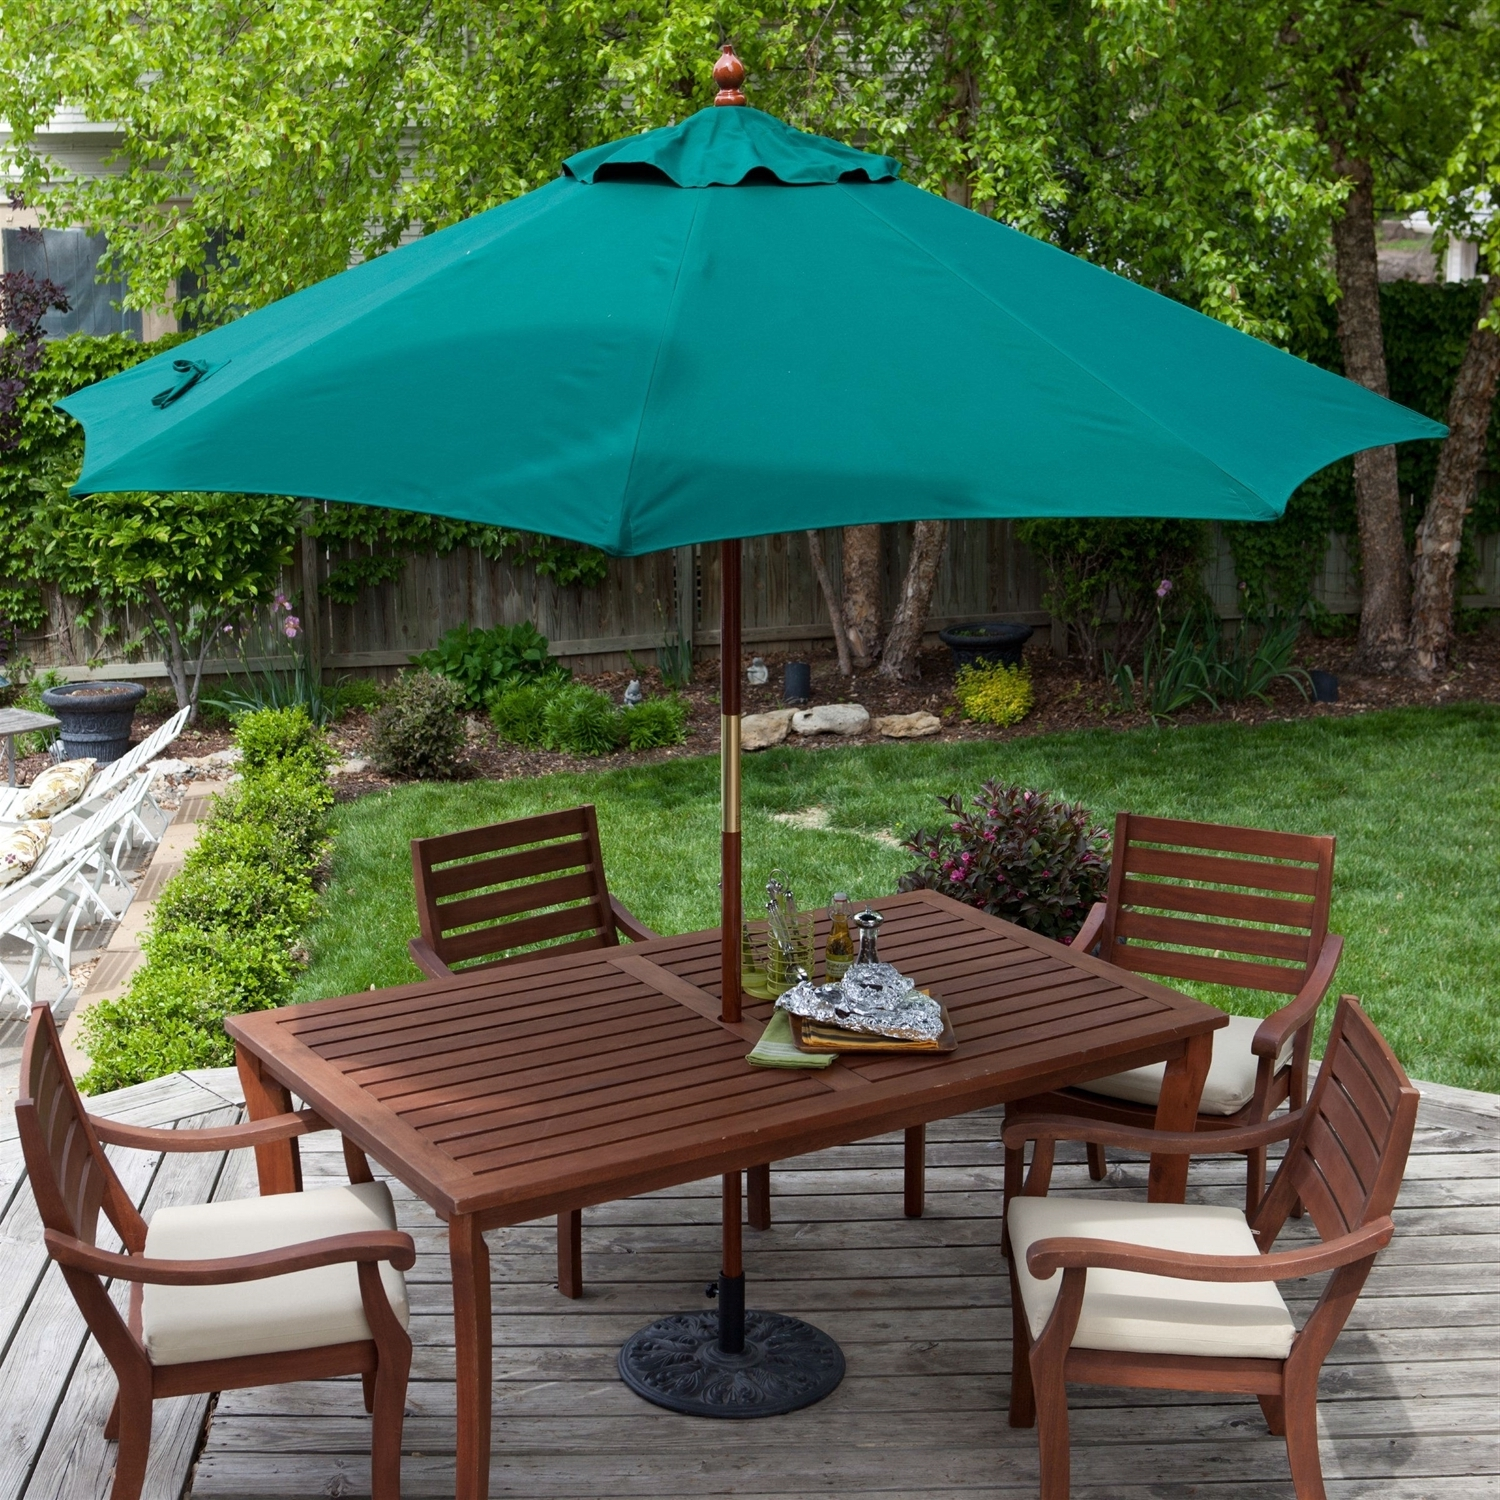 Patio Furniture Sets With Umbrellas Throughout Fashionable Table: Outstanding Lowes Patio Table For Amusing Outdoor Furniture (View 14 of 20)